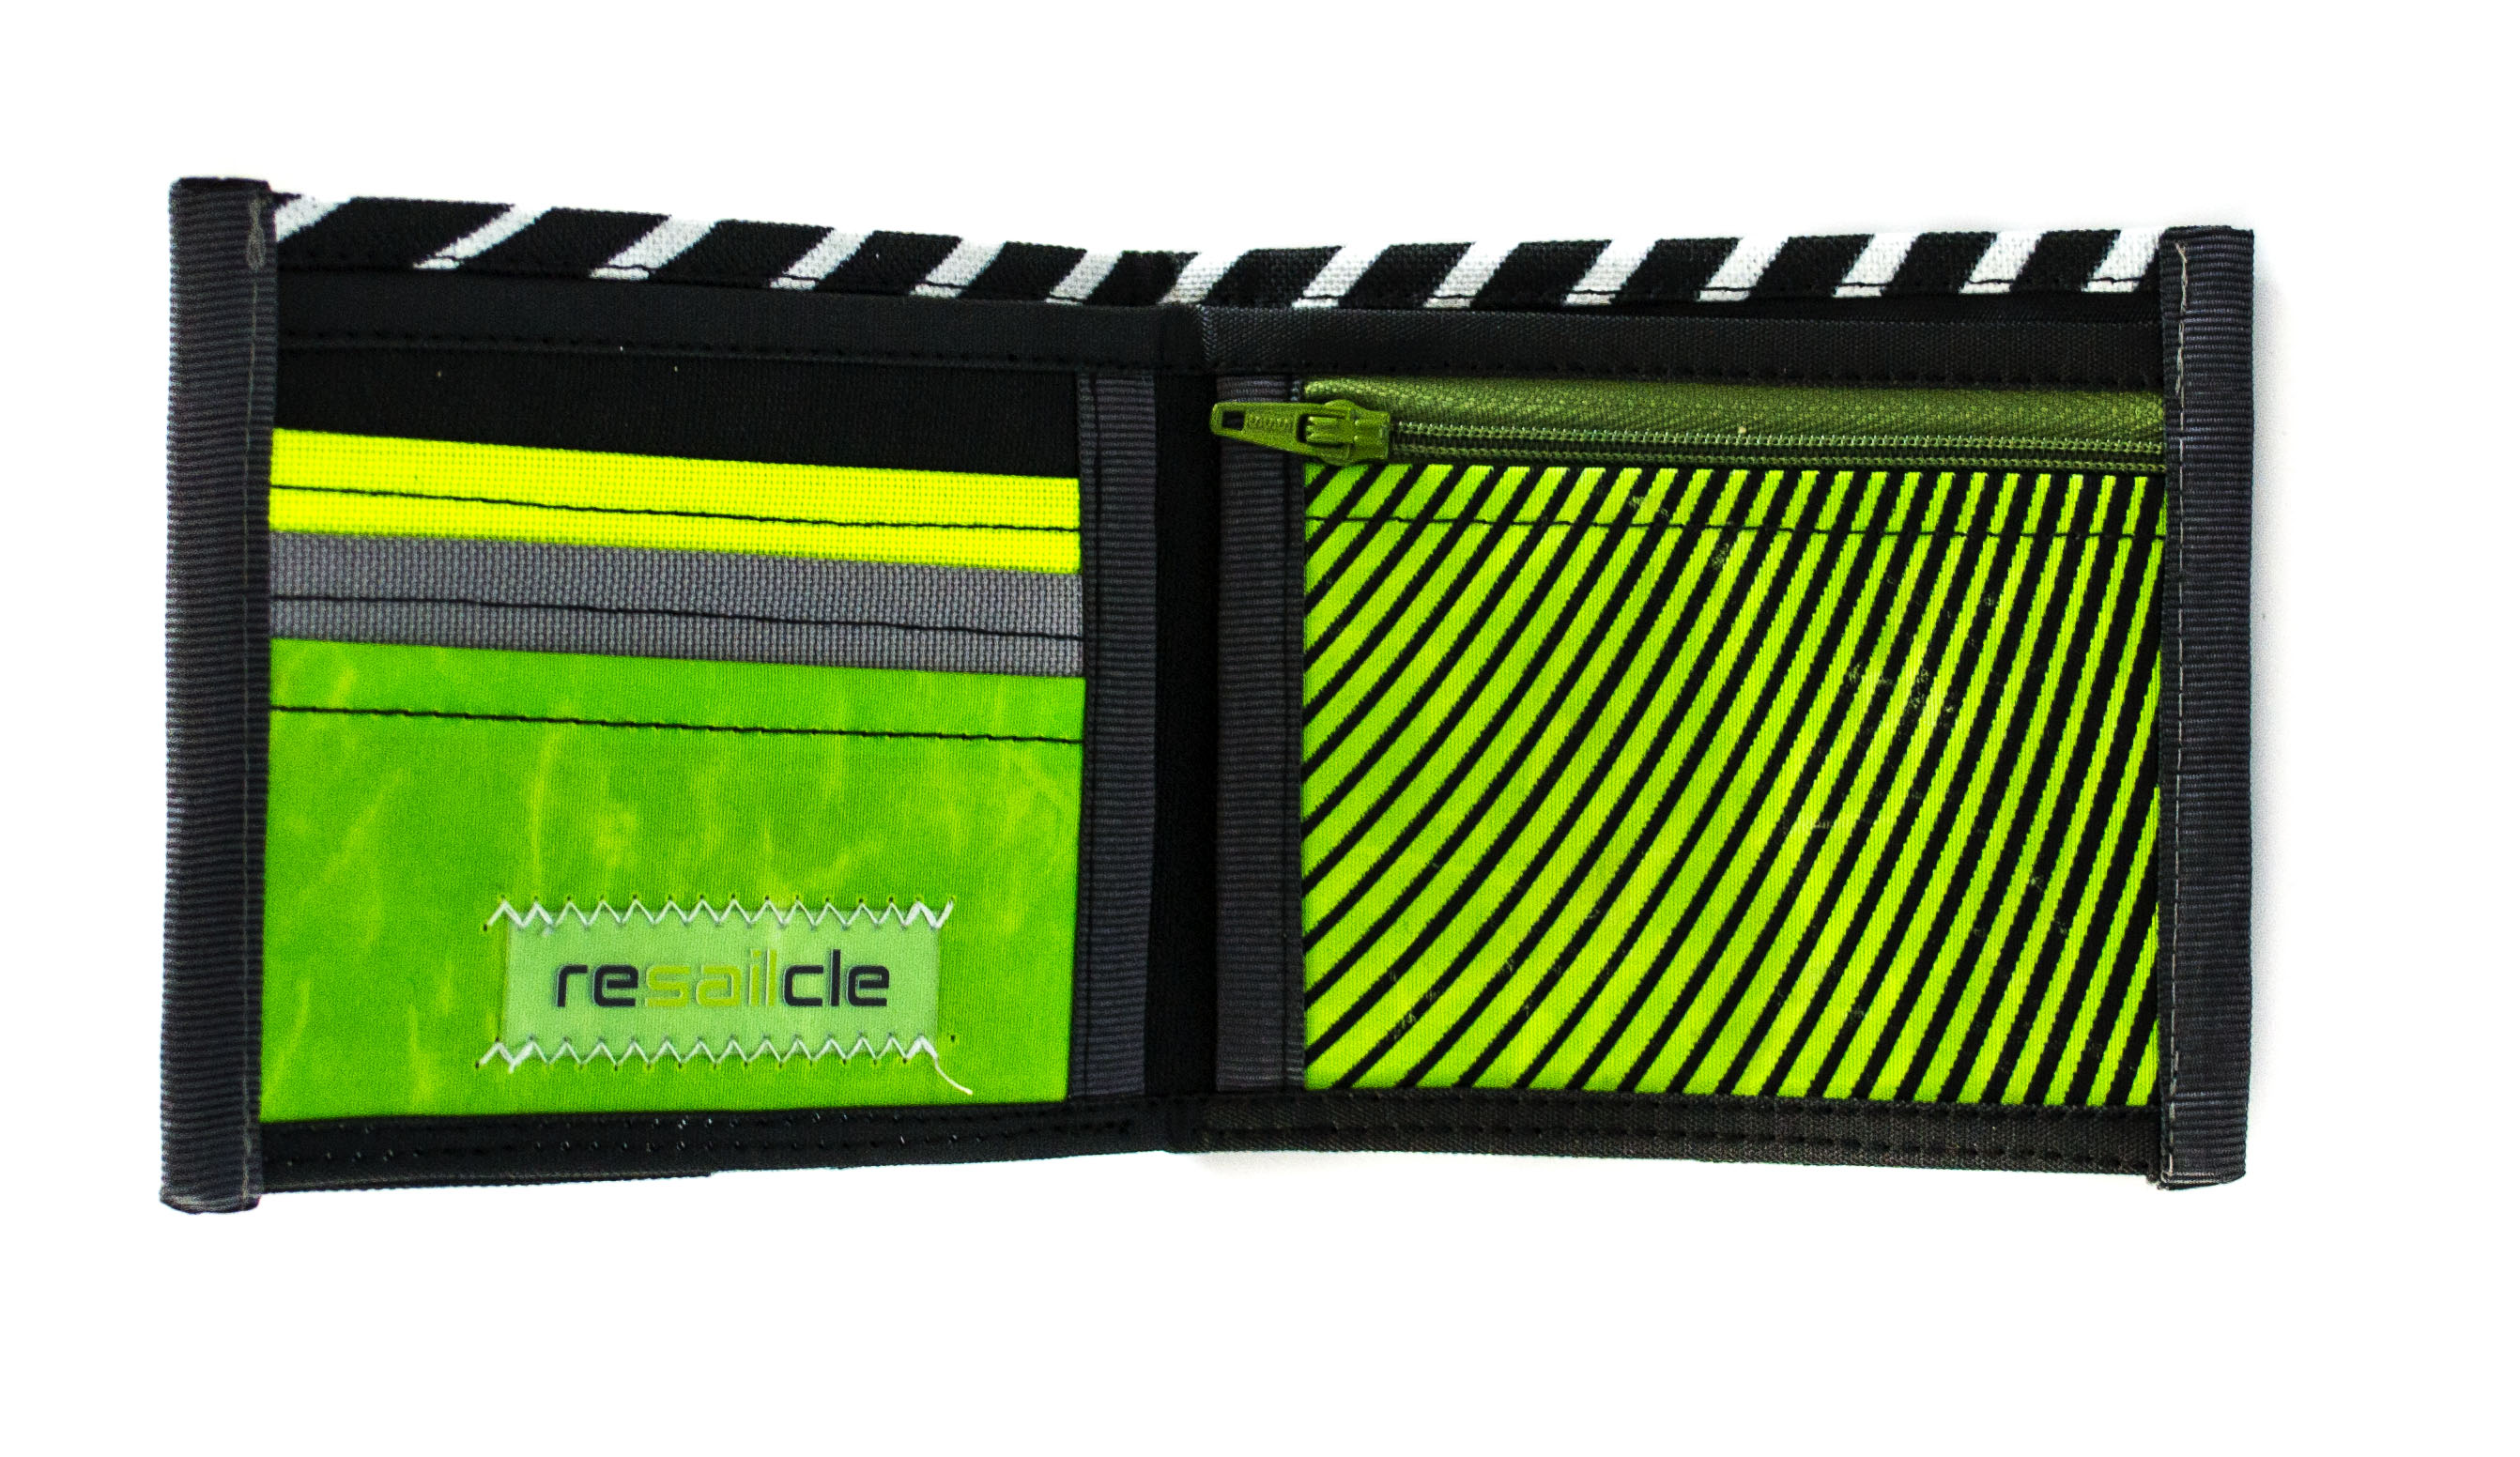 ReSailCle - RRD black and green II. wallet